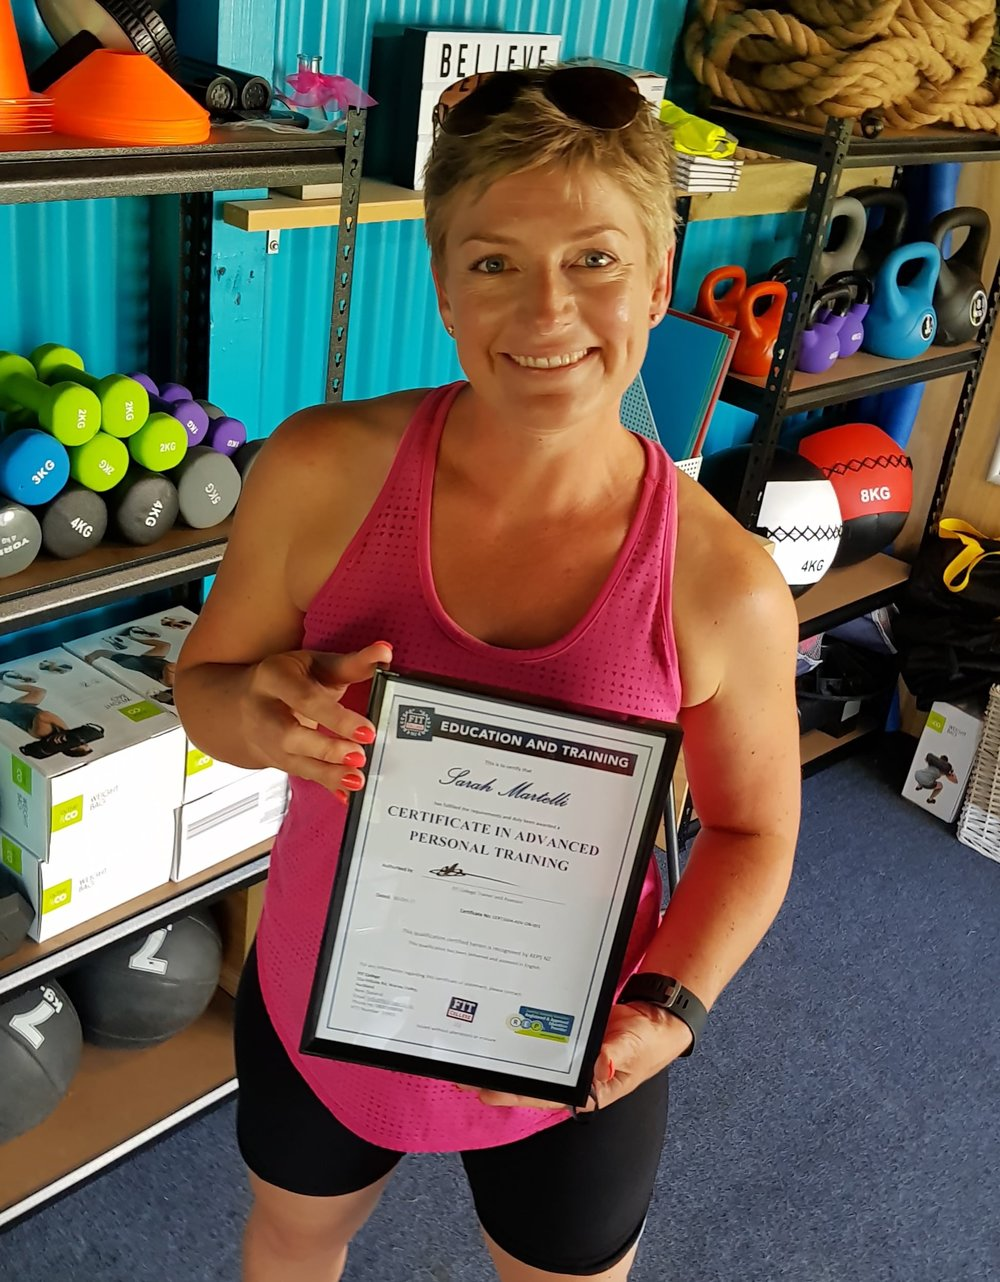 Me with my certificate in Advanced Personal Training.jpg